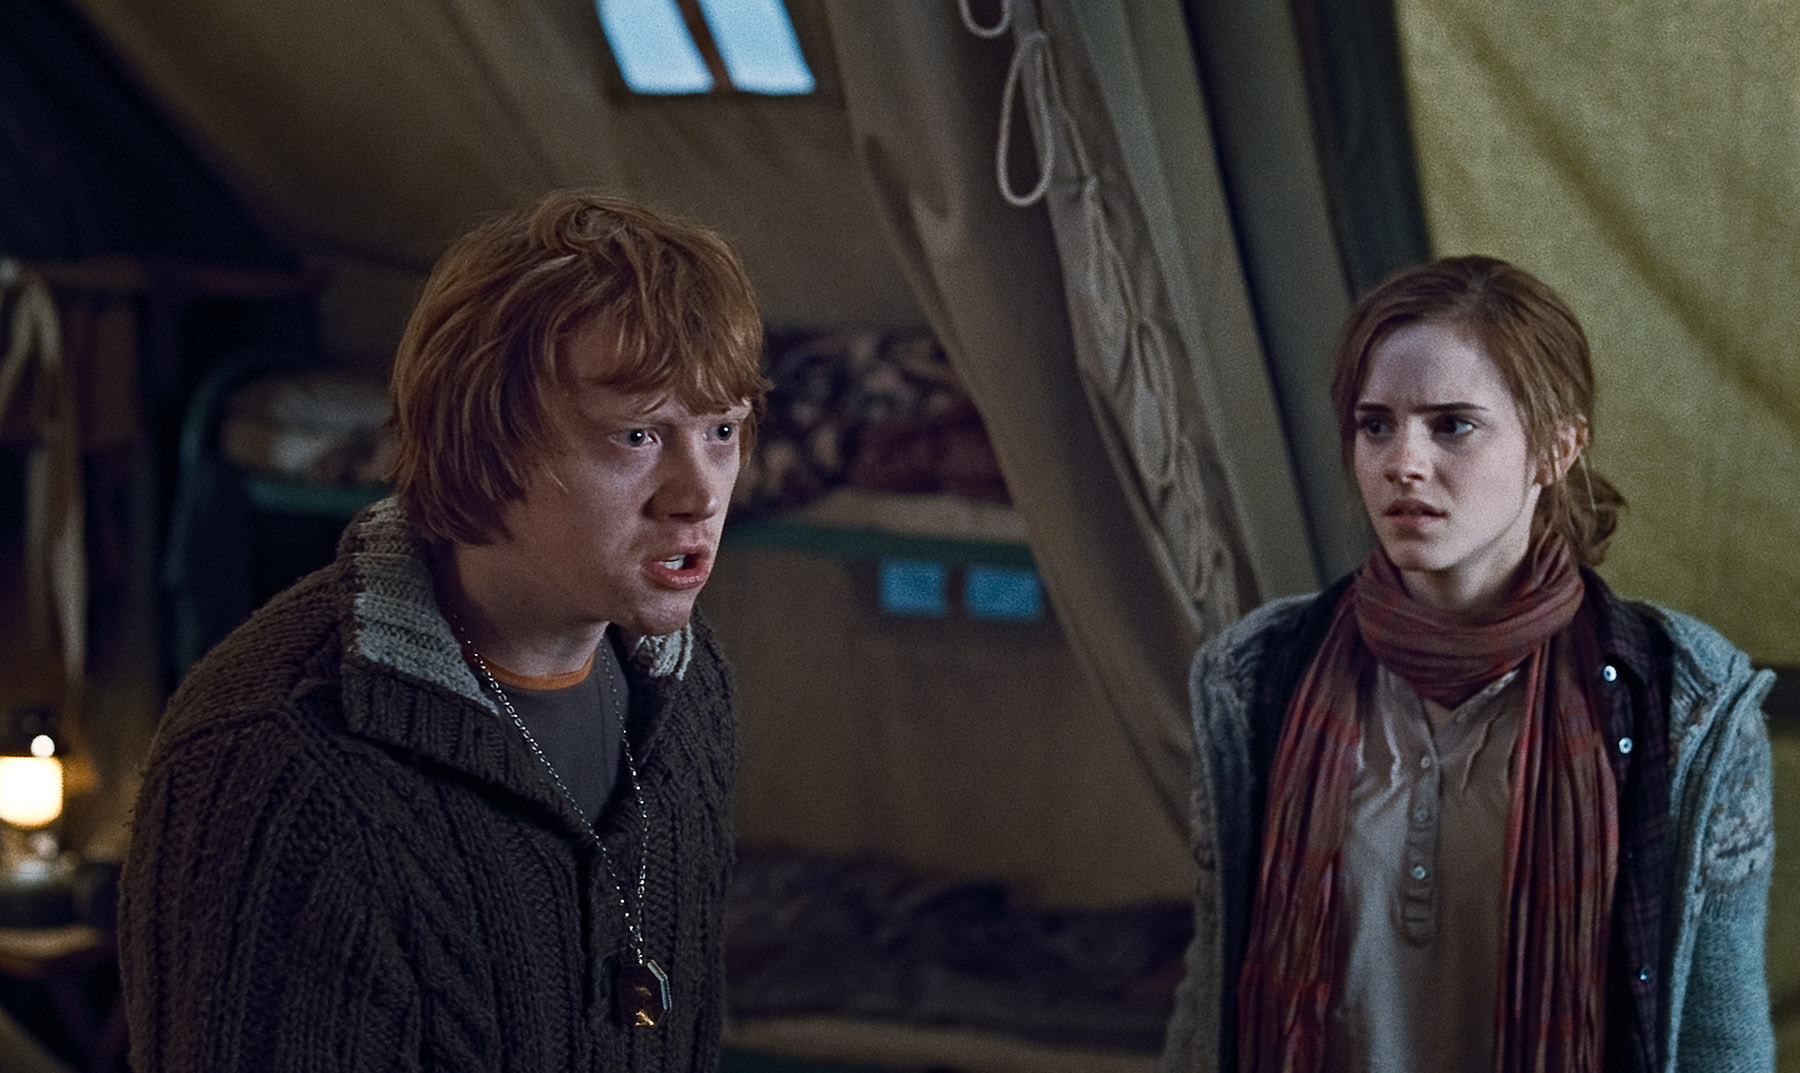 Ron and hermione from harry potter deathly hallows desktop - Harry potter hermione granger ron weasley ...